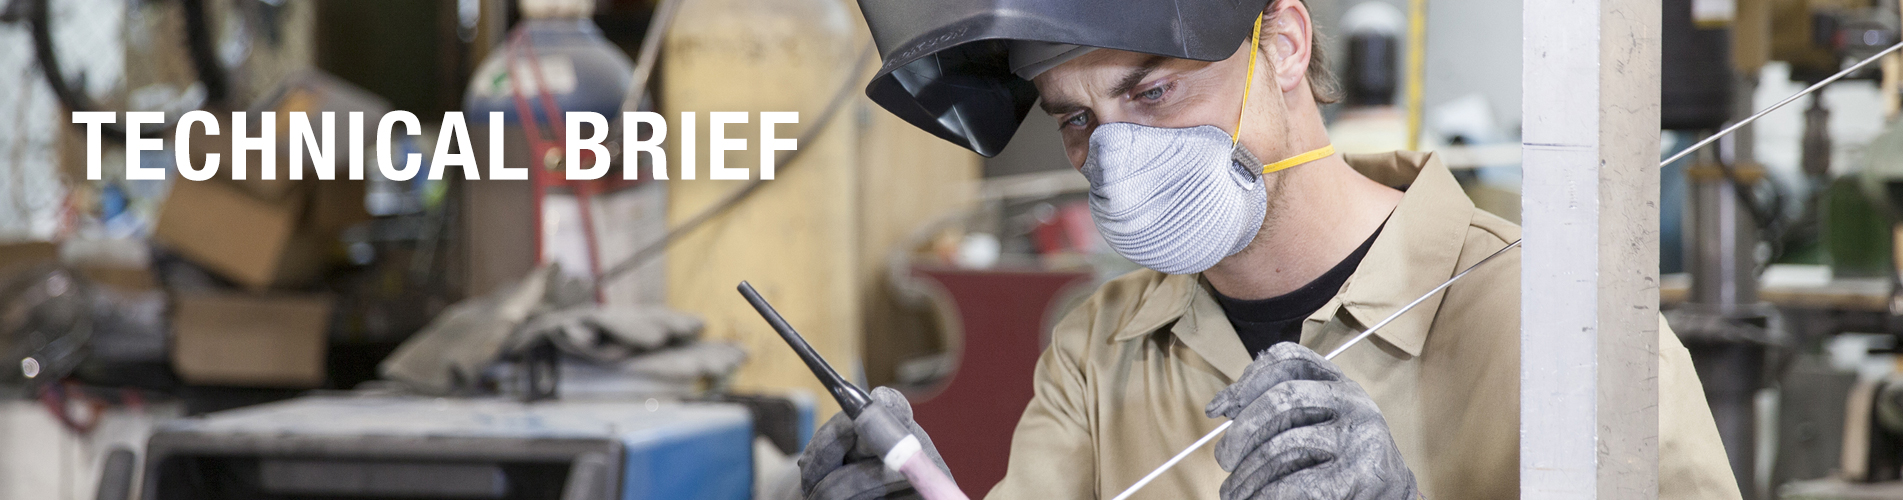 welder wearing fully disposable respiratory face mask in work area